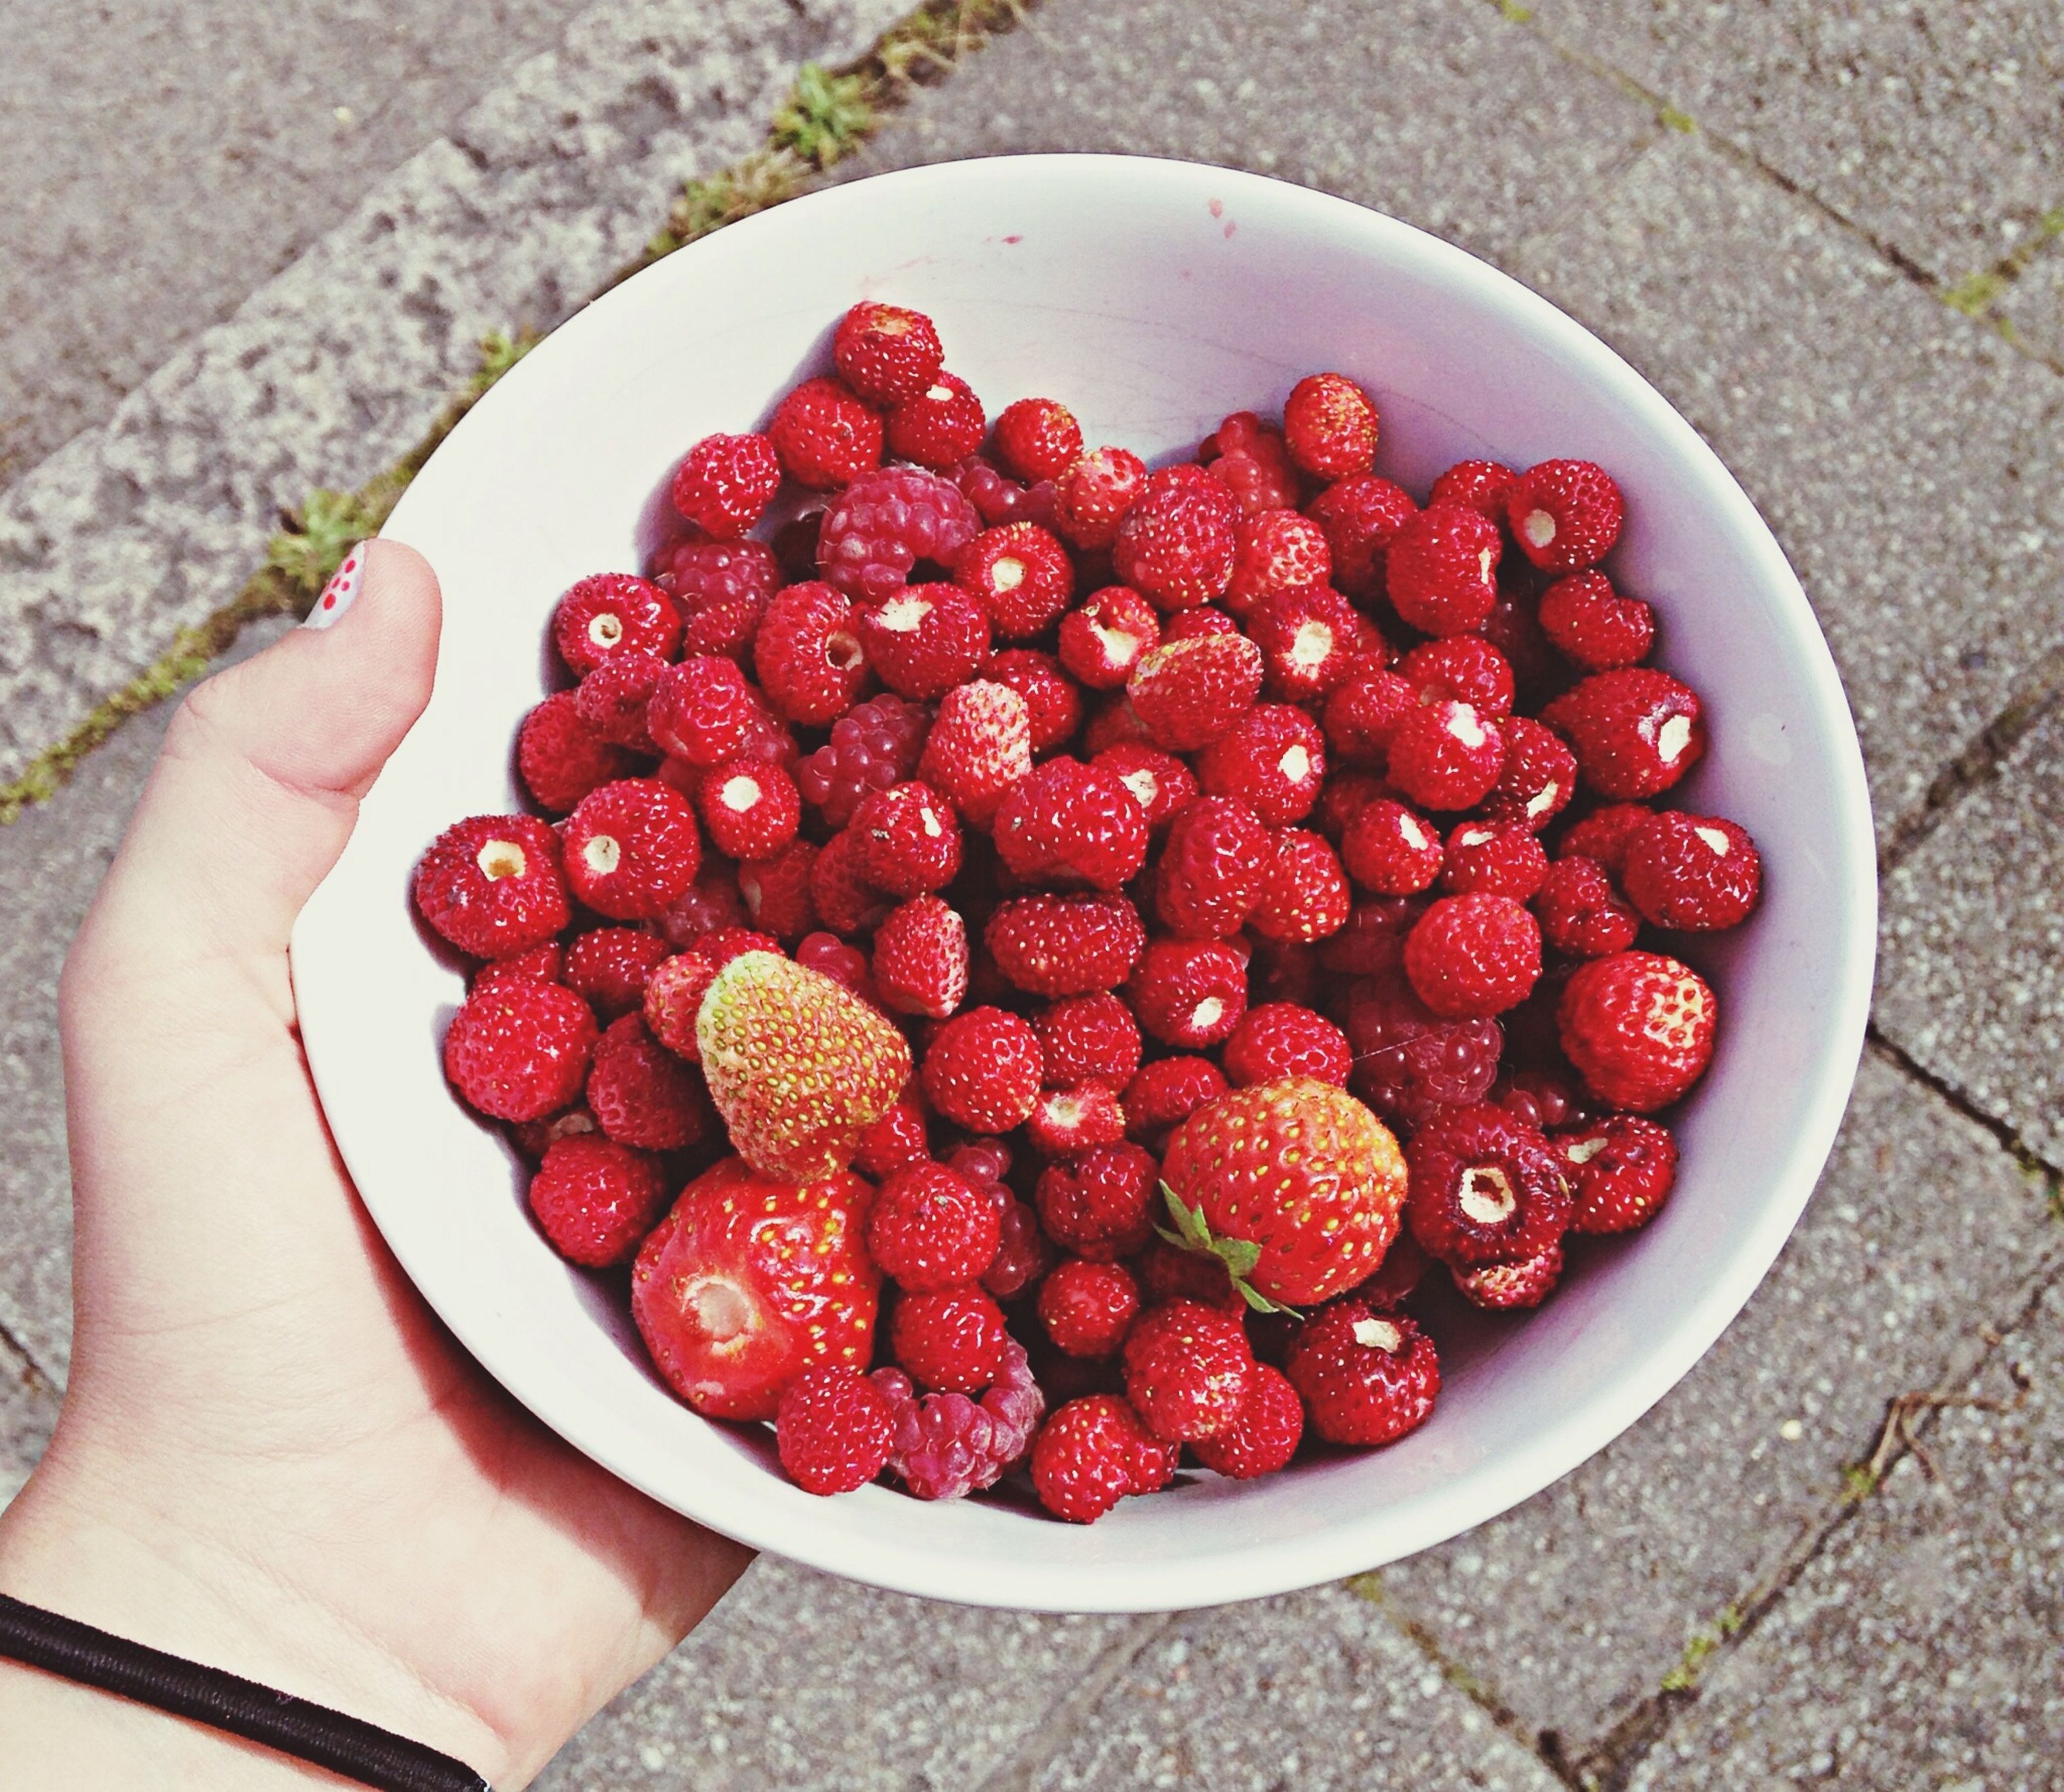 food and drink, red, food, fruit, freshness, healthy eating, strawberry, person, high angle view, part of, holding, personal perspective, cropped, raspberry, unrecognizable person, directly above, indoors